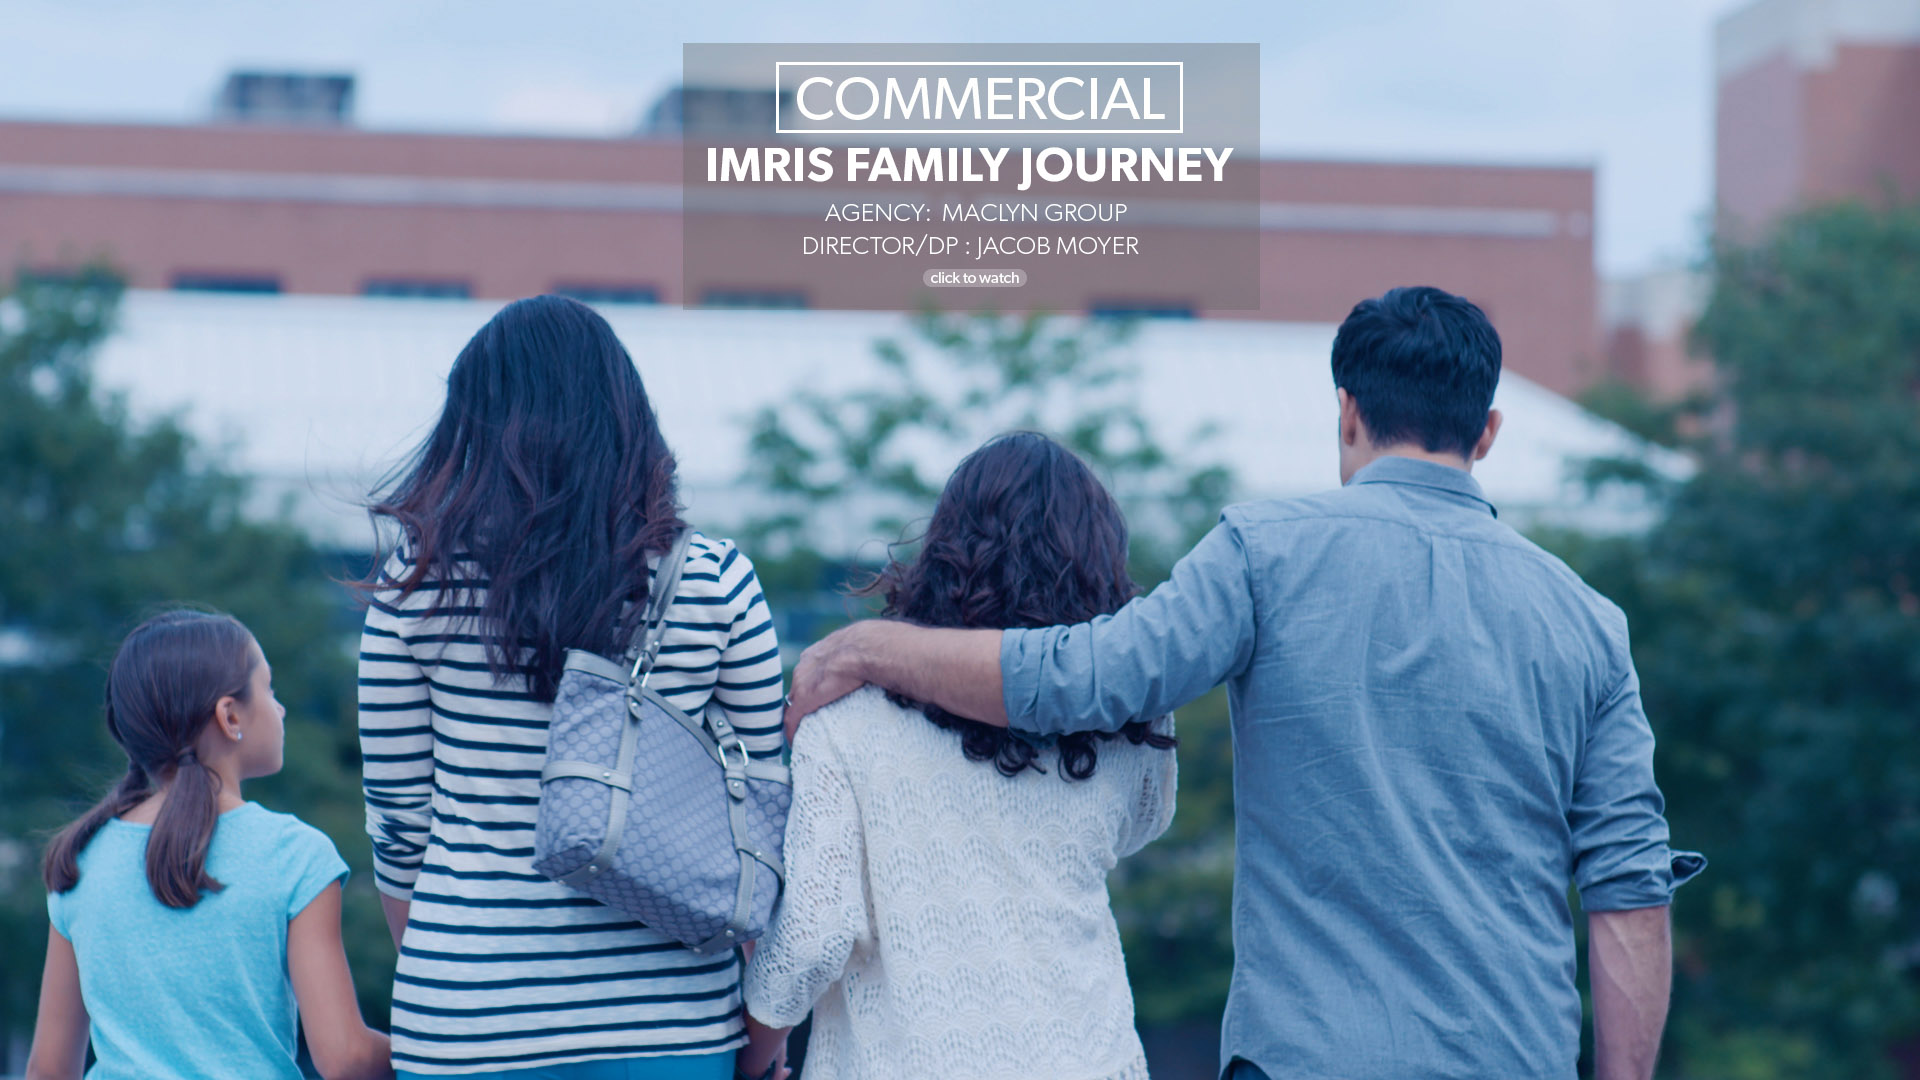 IMRIS FAMILY JOURNEY